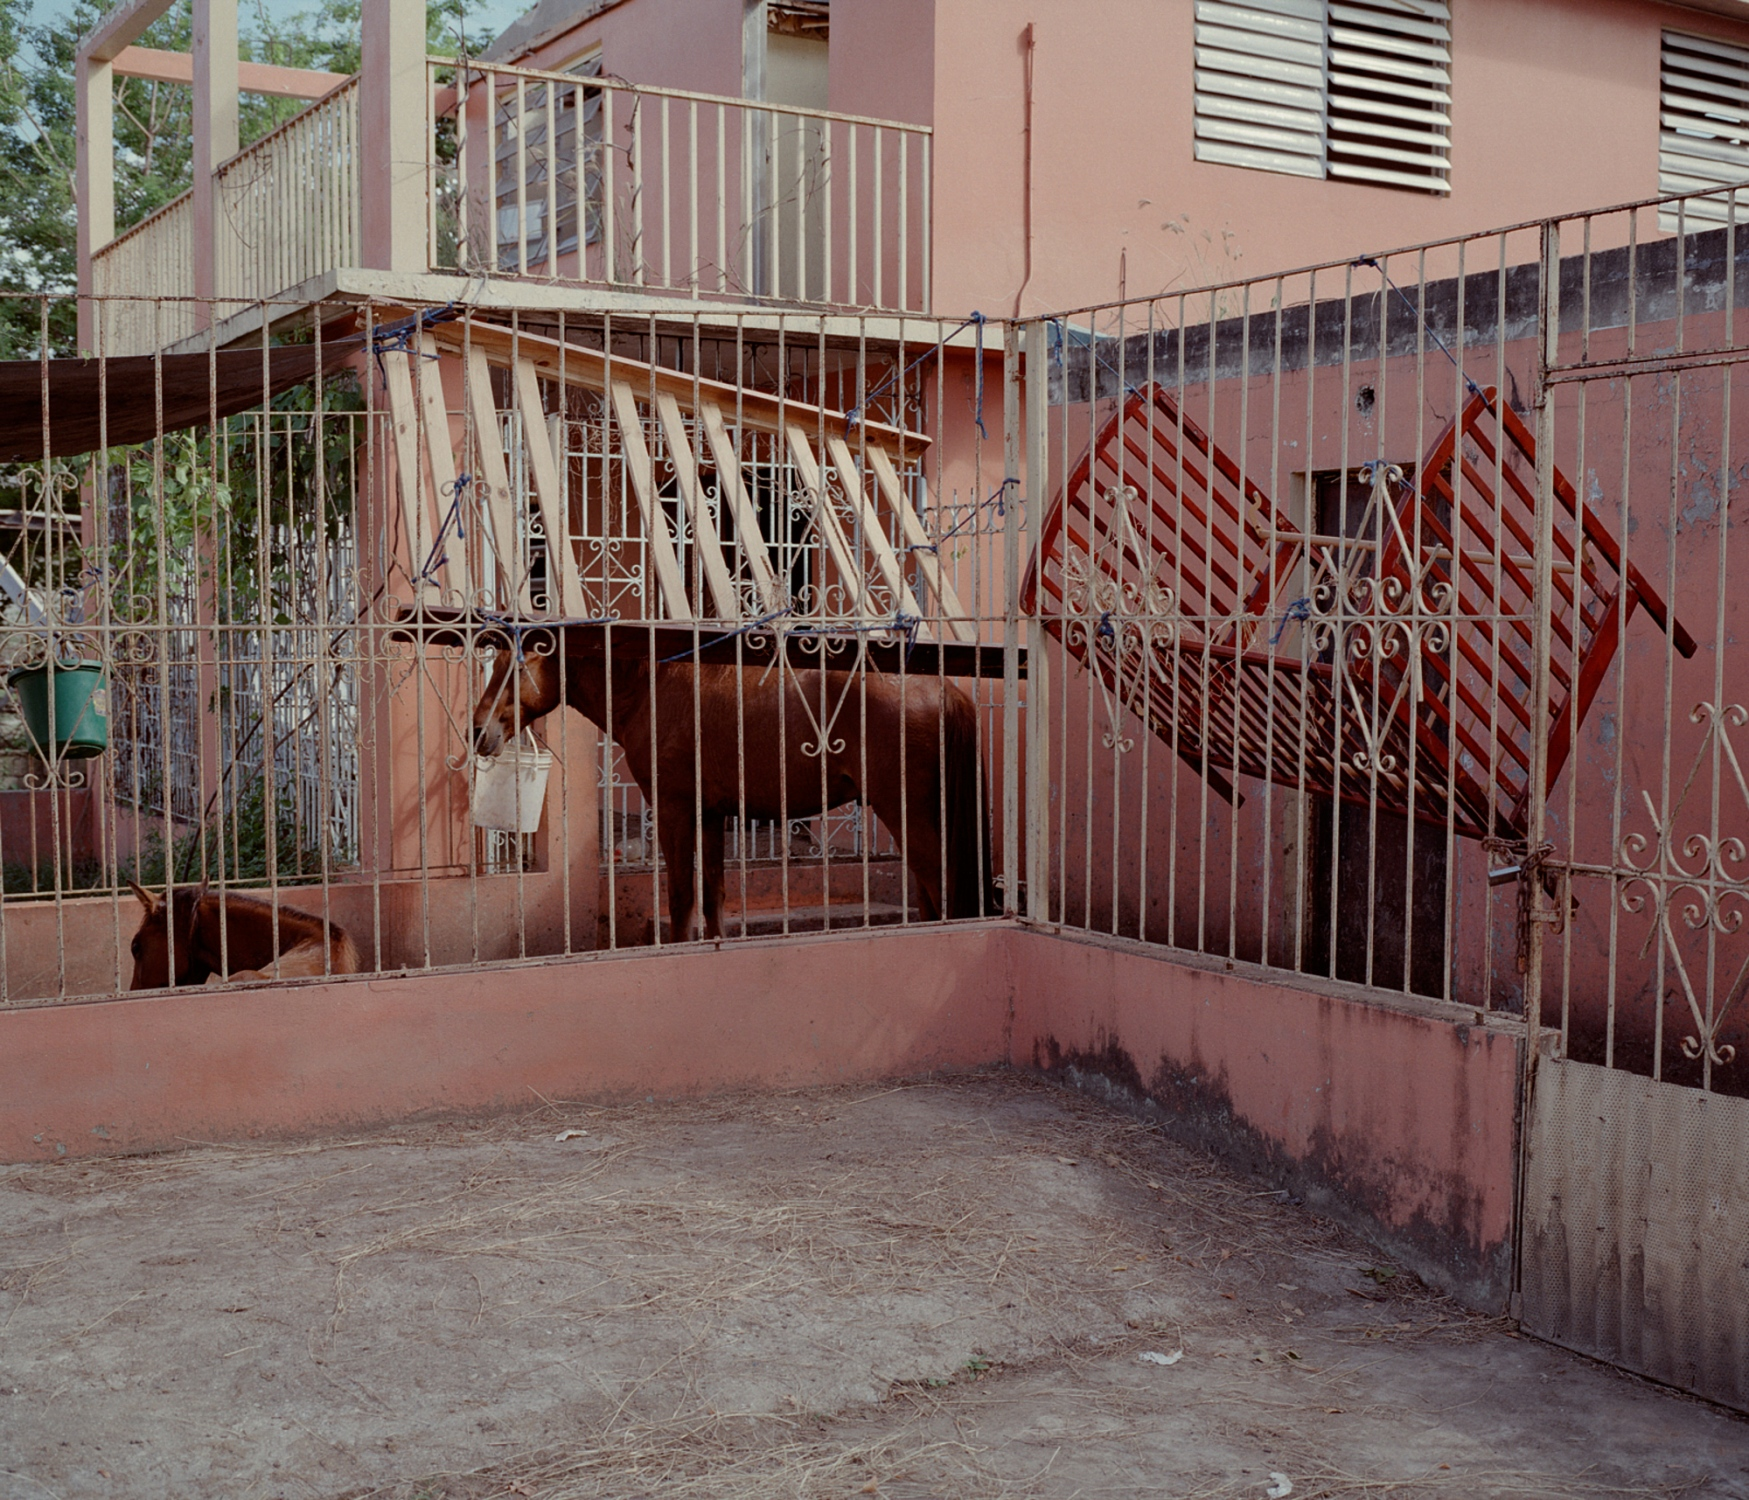 The residents of the barrio Buyones in Ponce converted an abandoned home into a holding pen for horses after Hurricane Maria decimated the area's stables.  Buyones, Puerto Rico, December 2017.